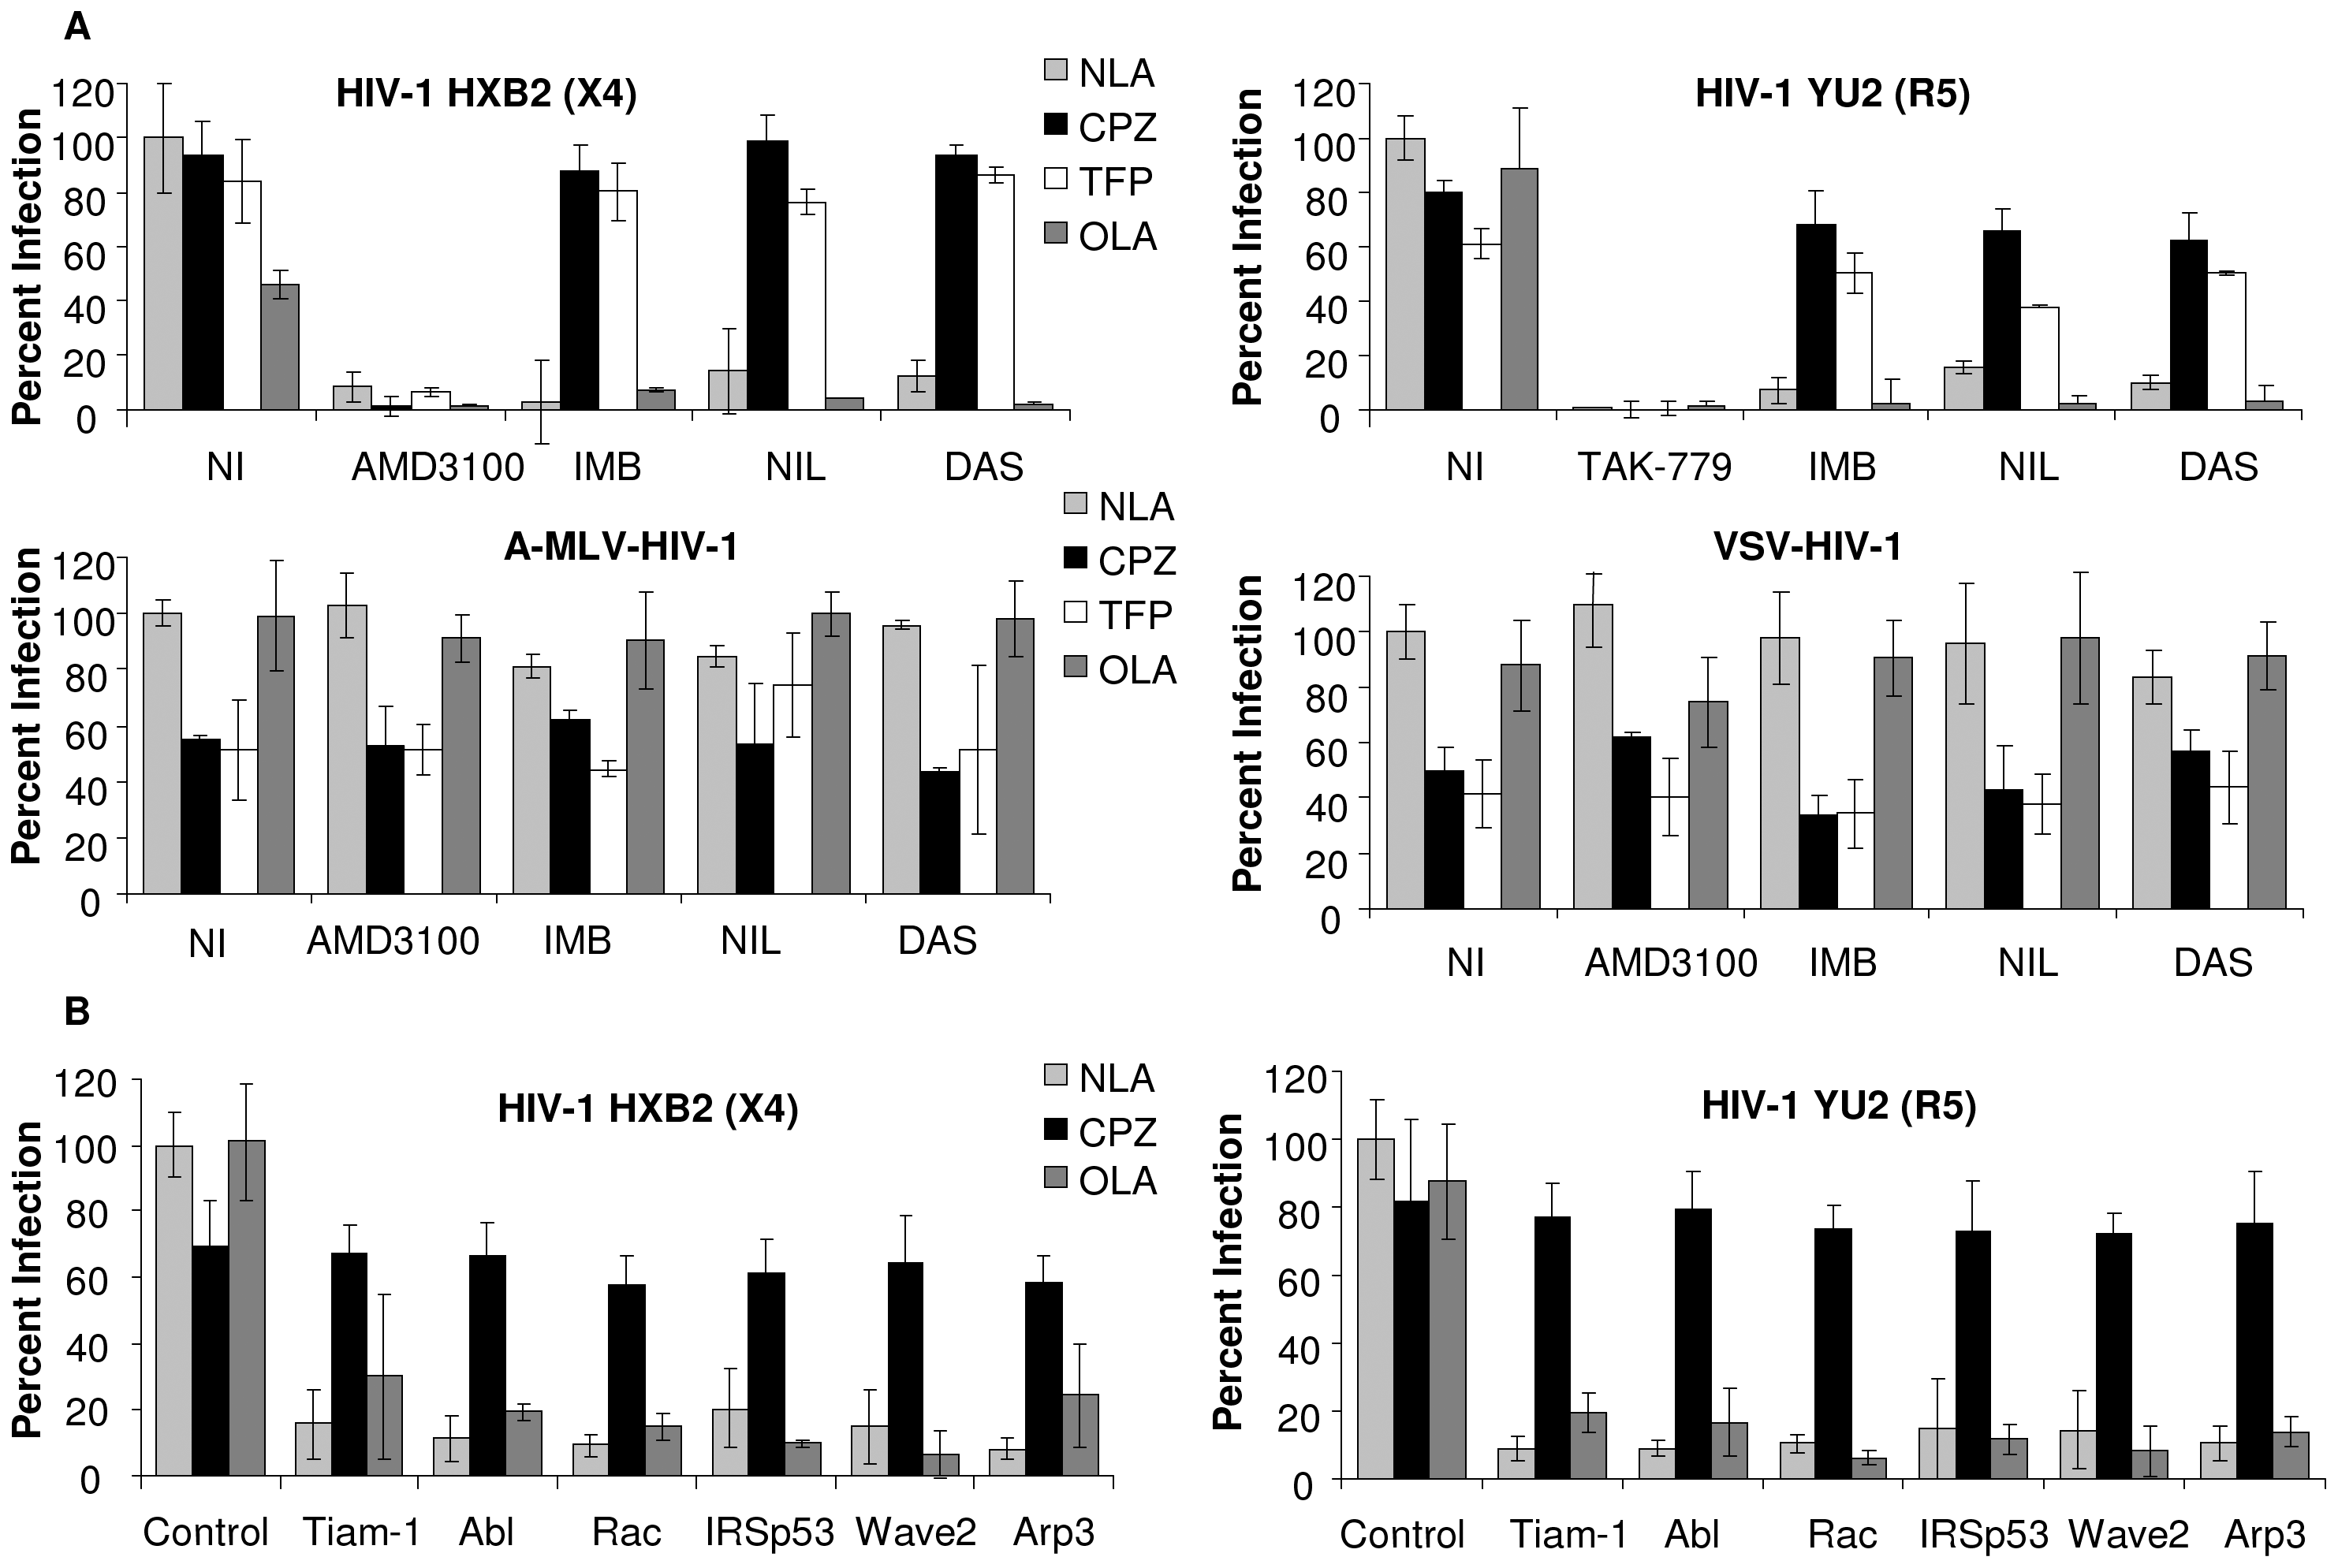 Abl kinase inhibitors and expression of siRNA targeted to the Wave2 complex block HIV-1 Env-mediated infection at a post-hemifusion step.